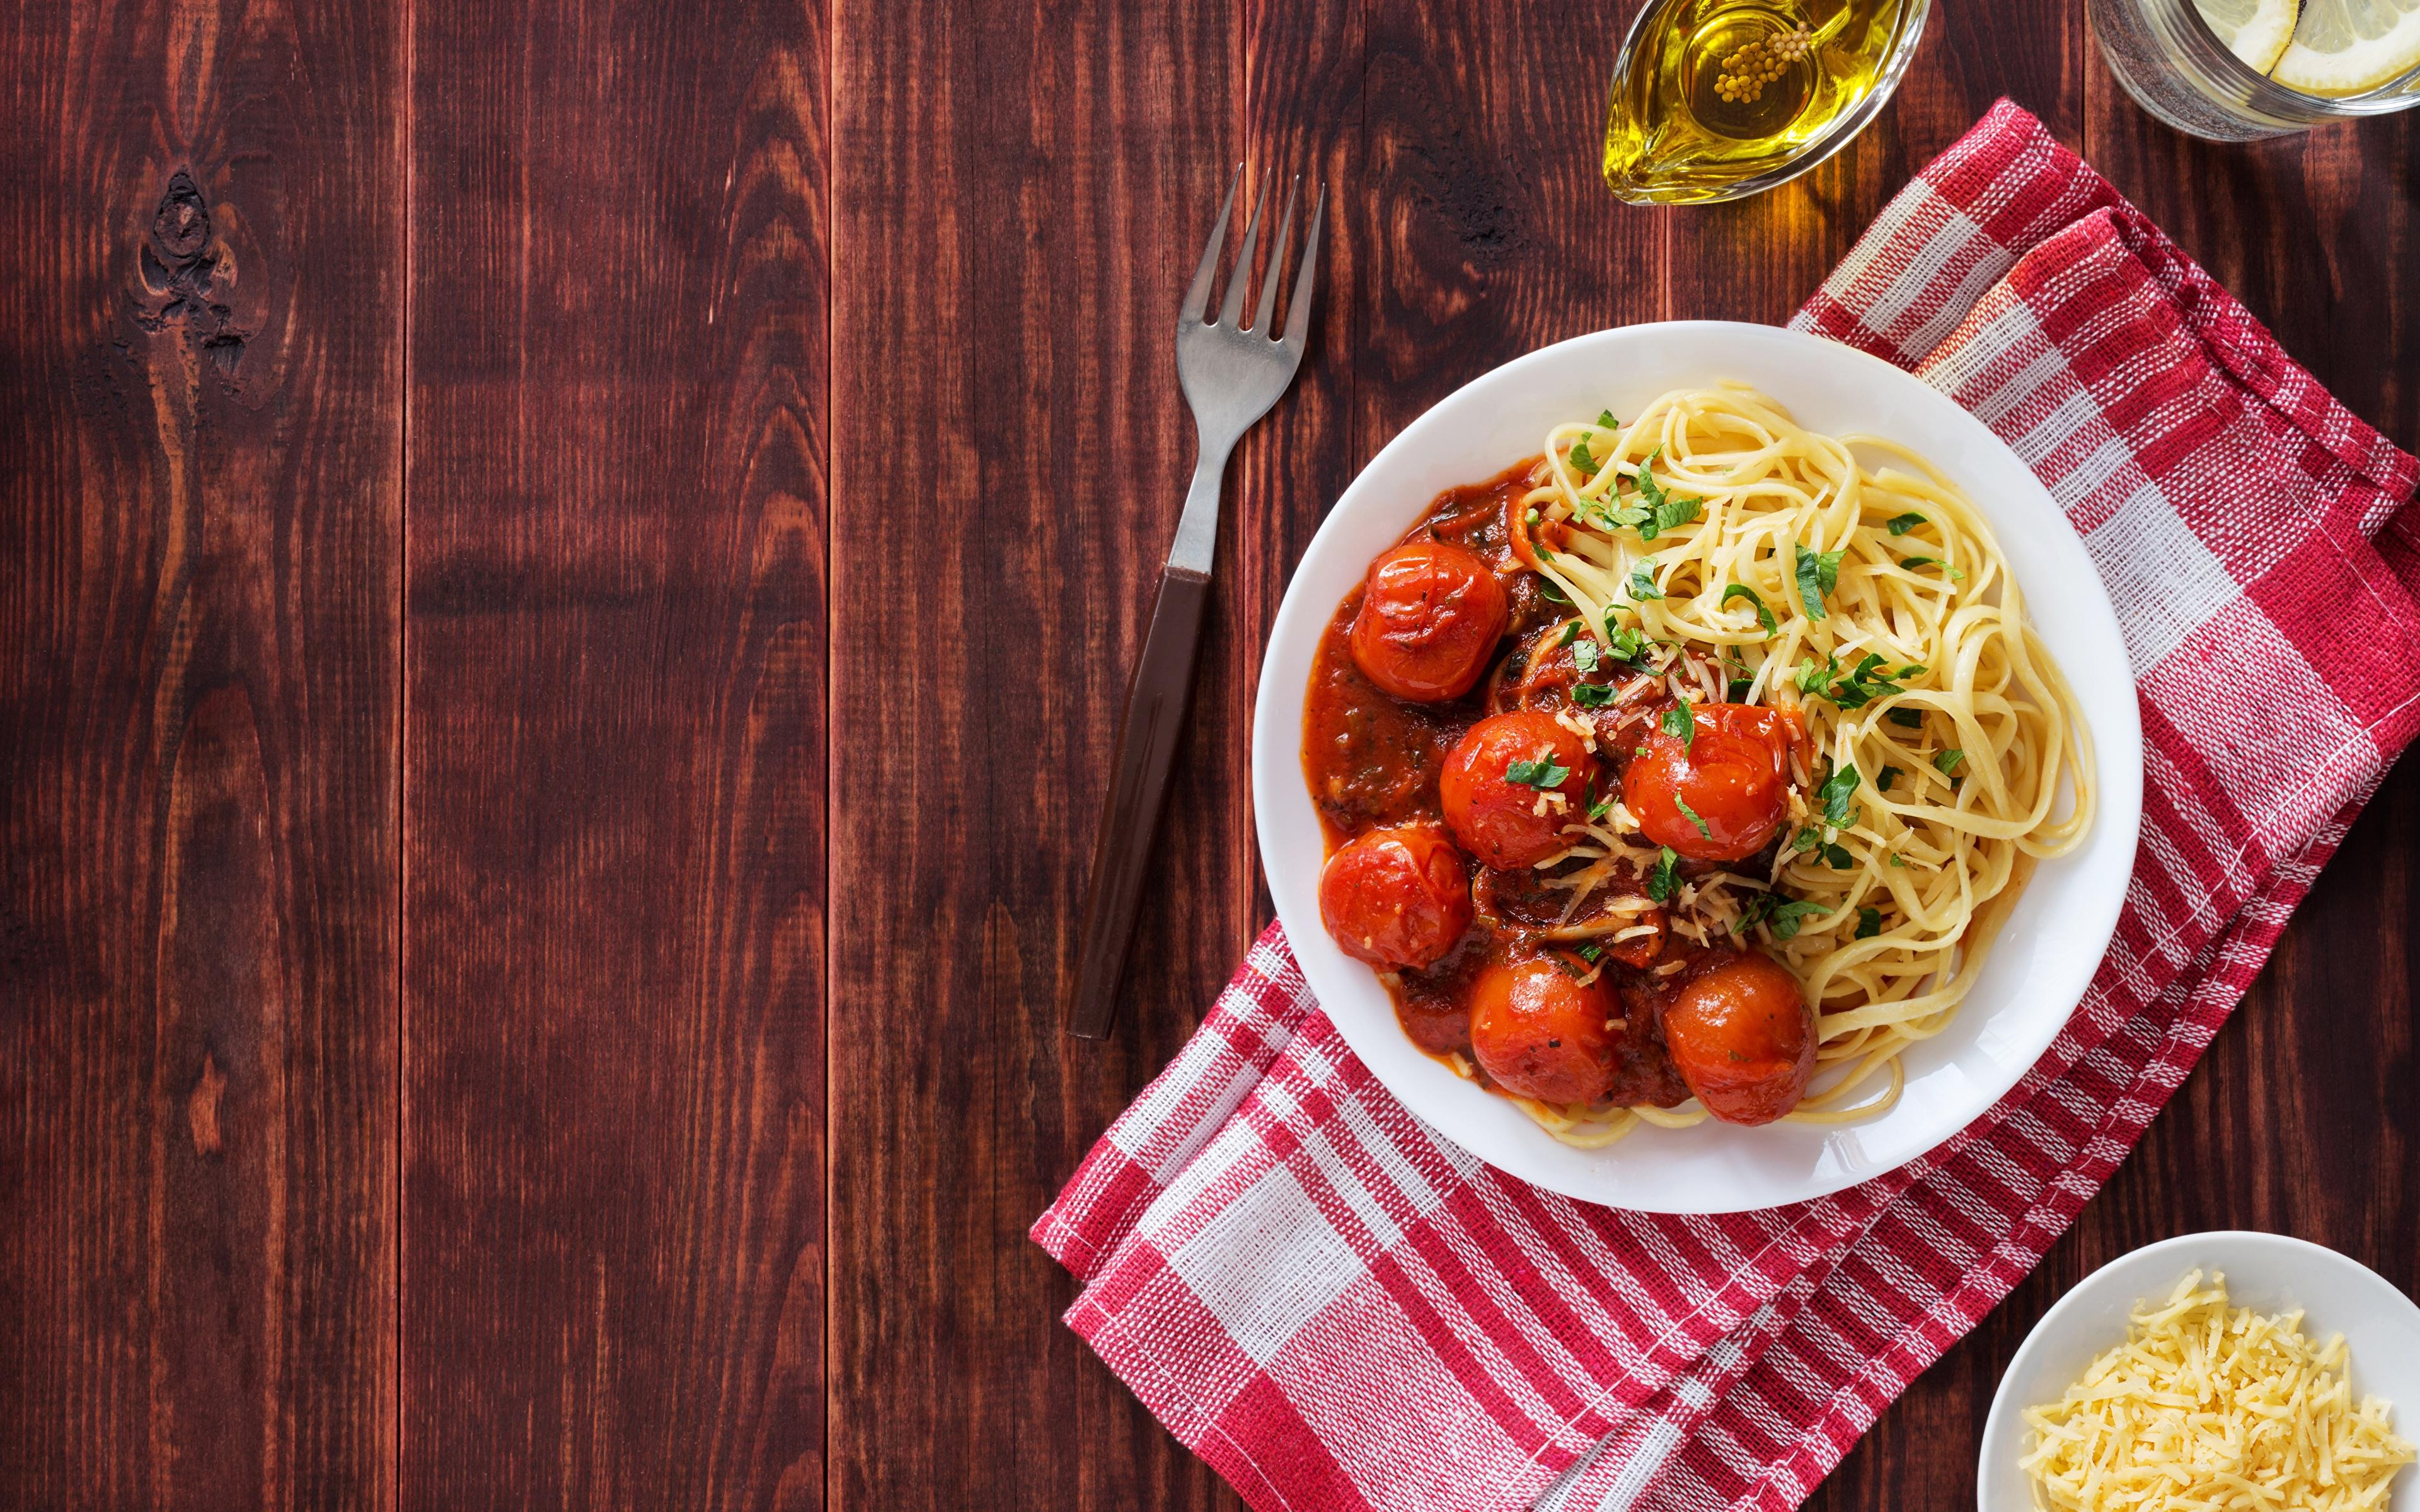 Wallpapers Pasta Tomatoes Fork Food Plate 3840x2400